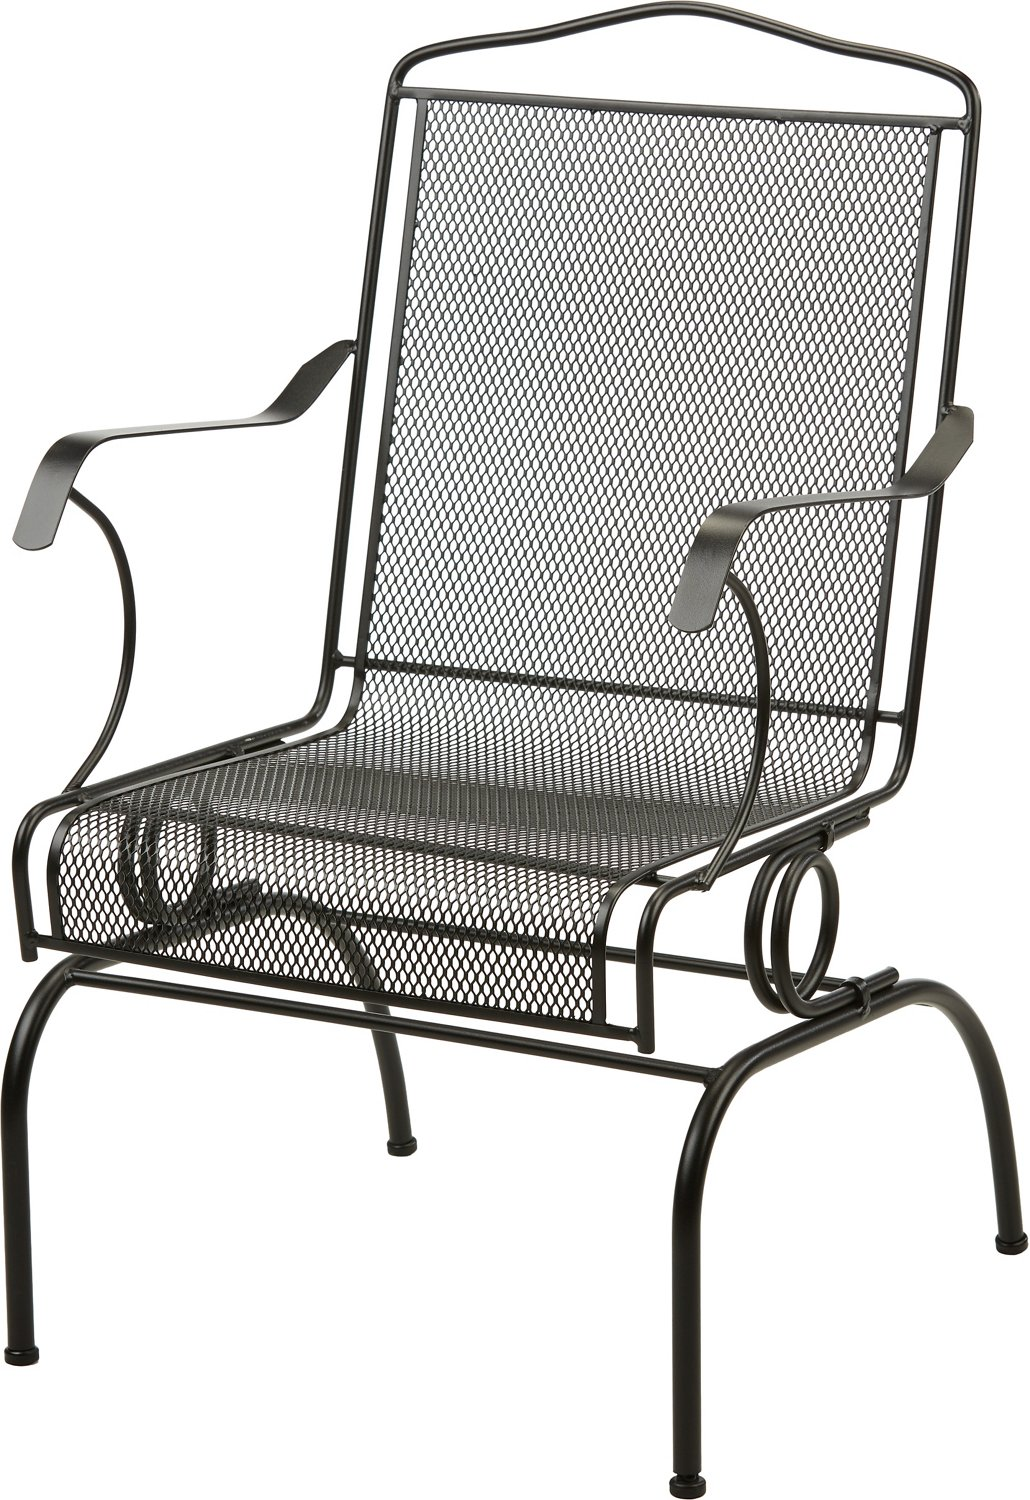 Arlington House Stack Action Chair  sc 1 st  Academy Sports + Outdoors & Patio Furniture | Patio Sets Patio Chairs Patio Swings u0026 more ...